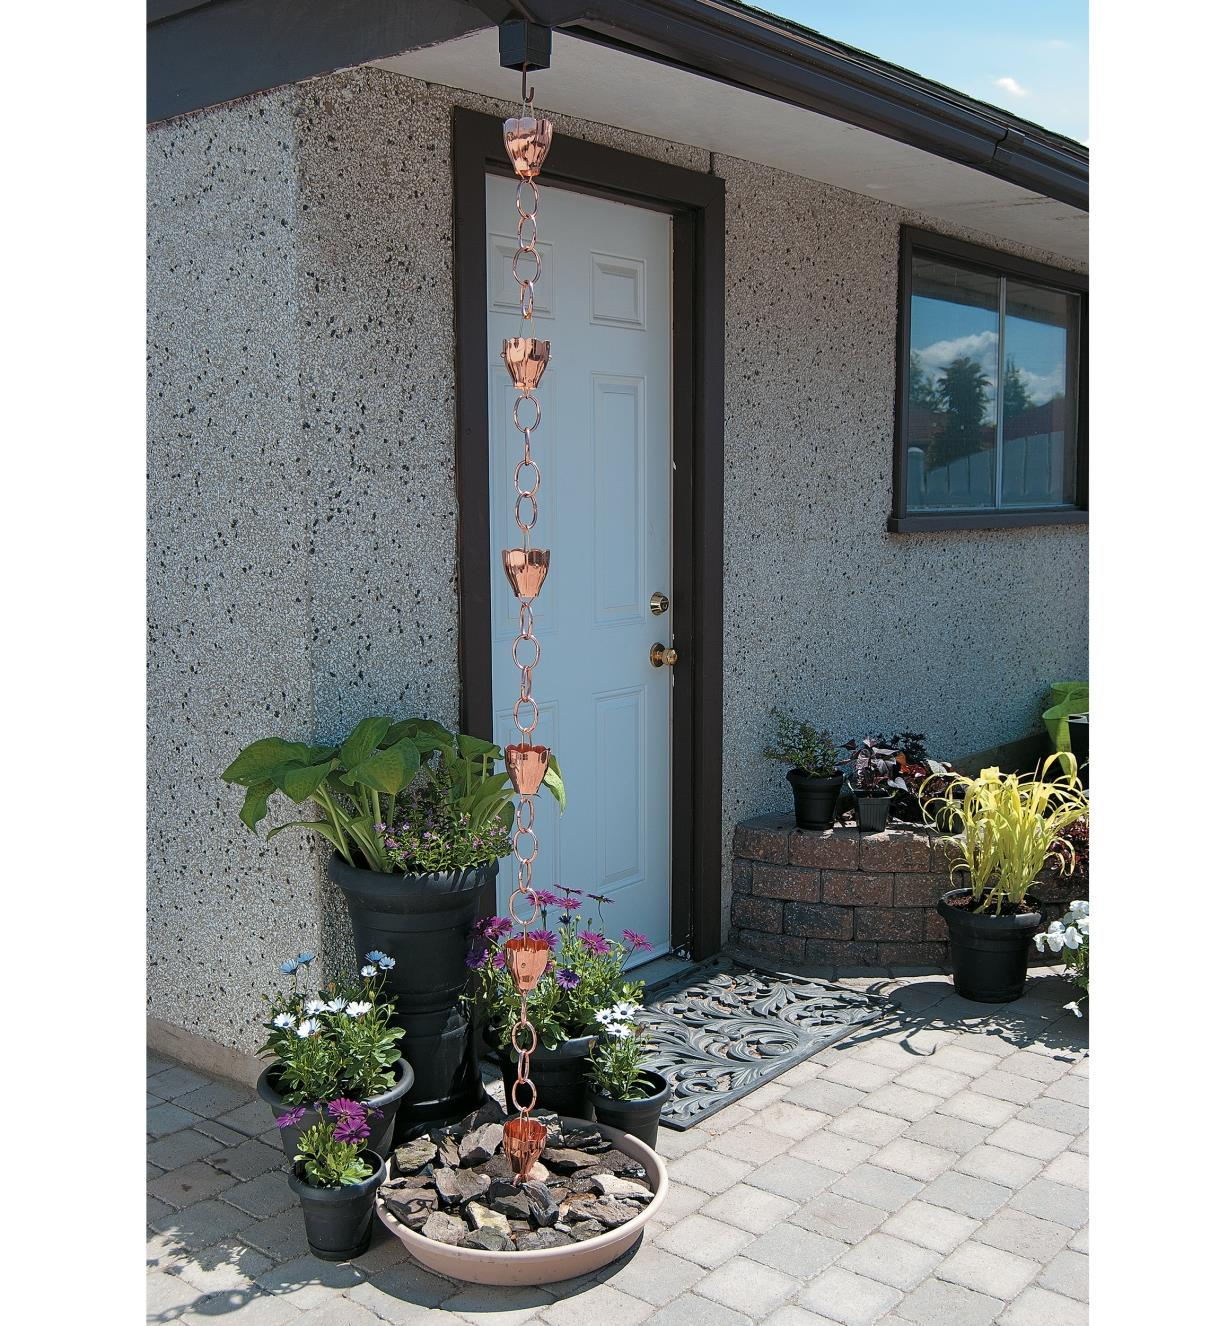 Two connected 3' sections of copper rain chain hang between a downspout opening and a splash plate